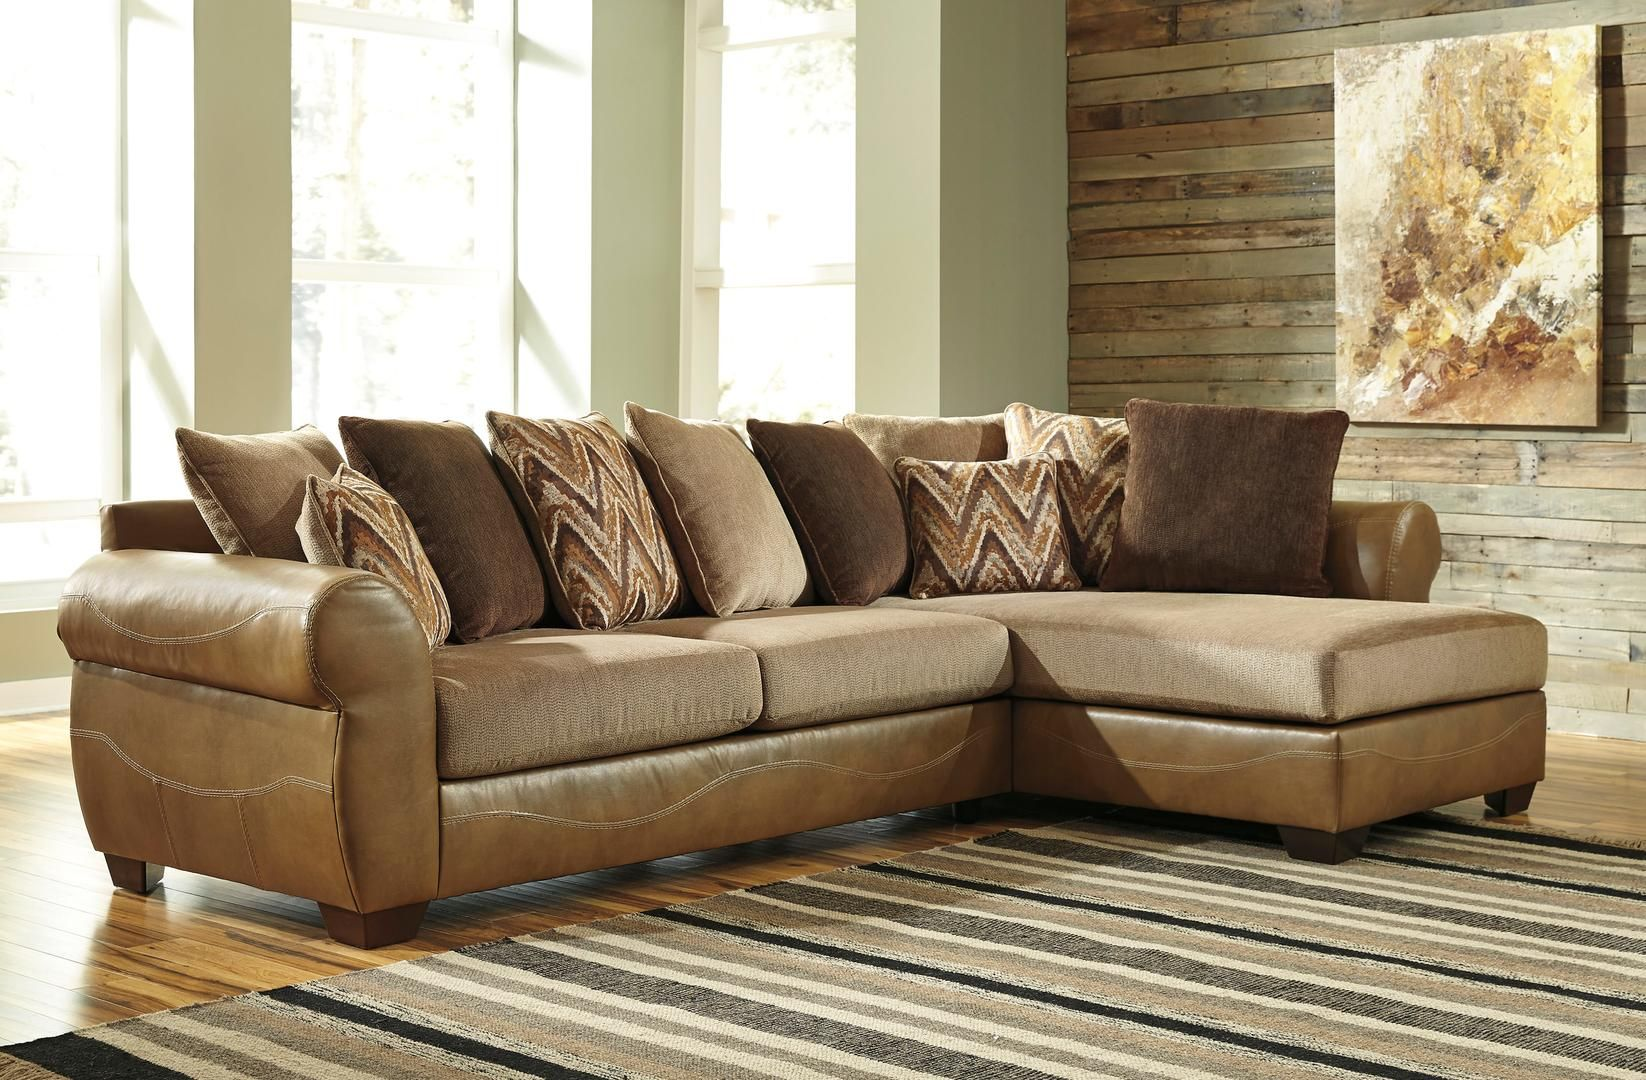 Benchcraft 863021766 Declain Series Sofa And Chaise Faux Leather